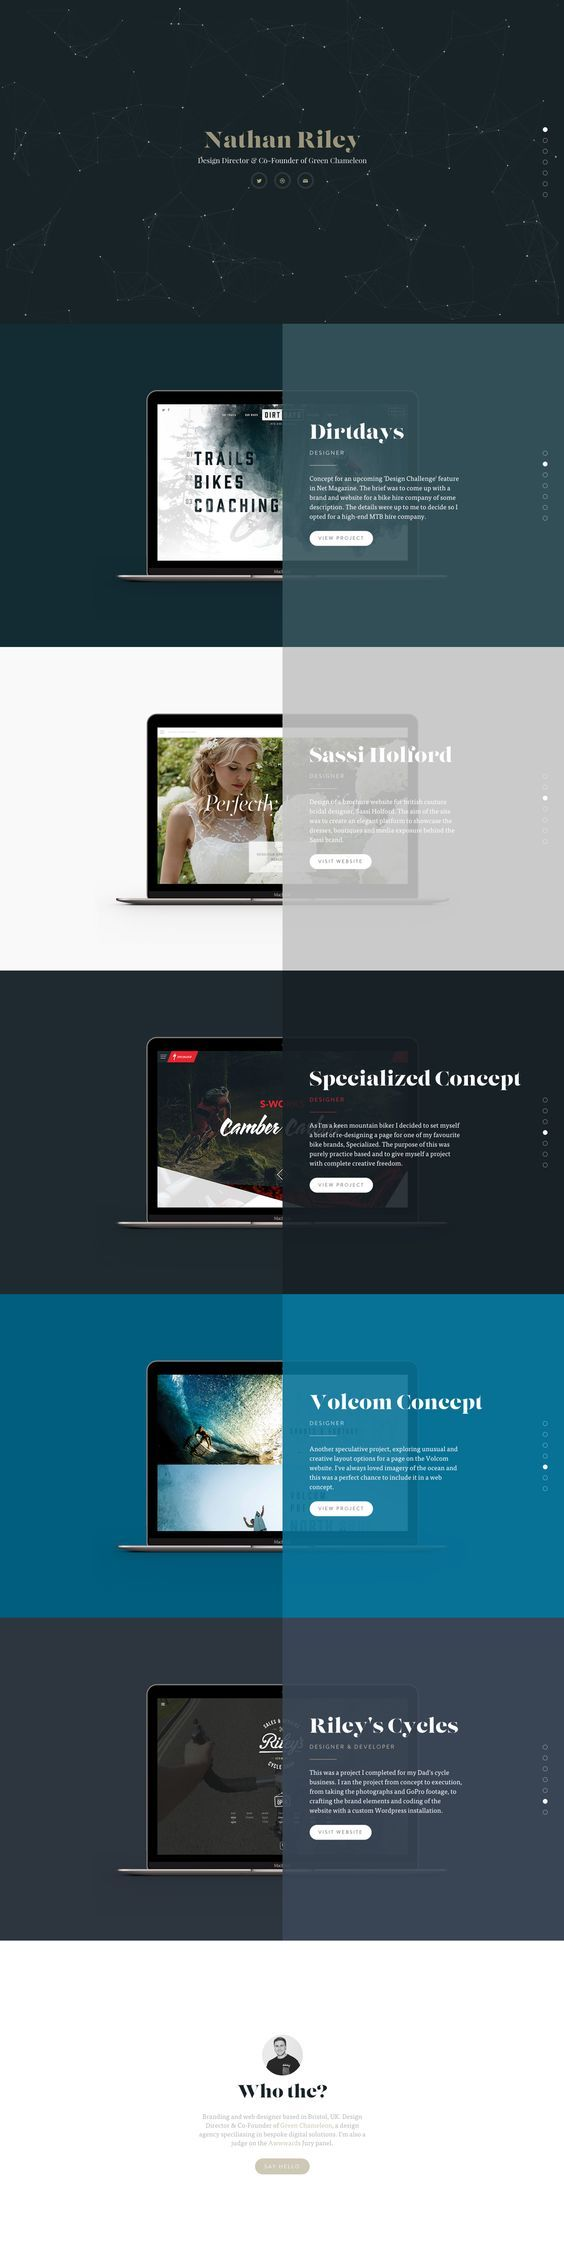 Responsive One Page portfolio for Green Chameleon designer, 'Nathan Riley' featuring a refreshing approach to the trendy centrally divided One Page layouts.: